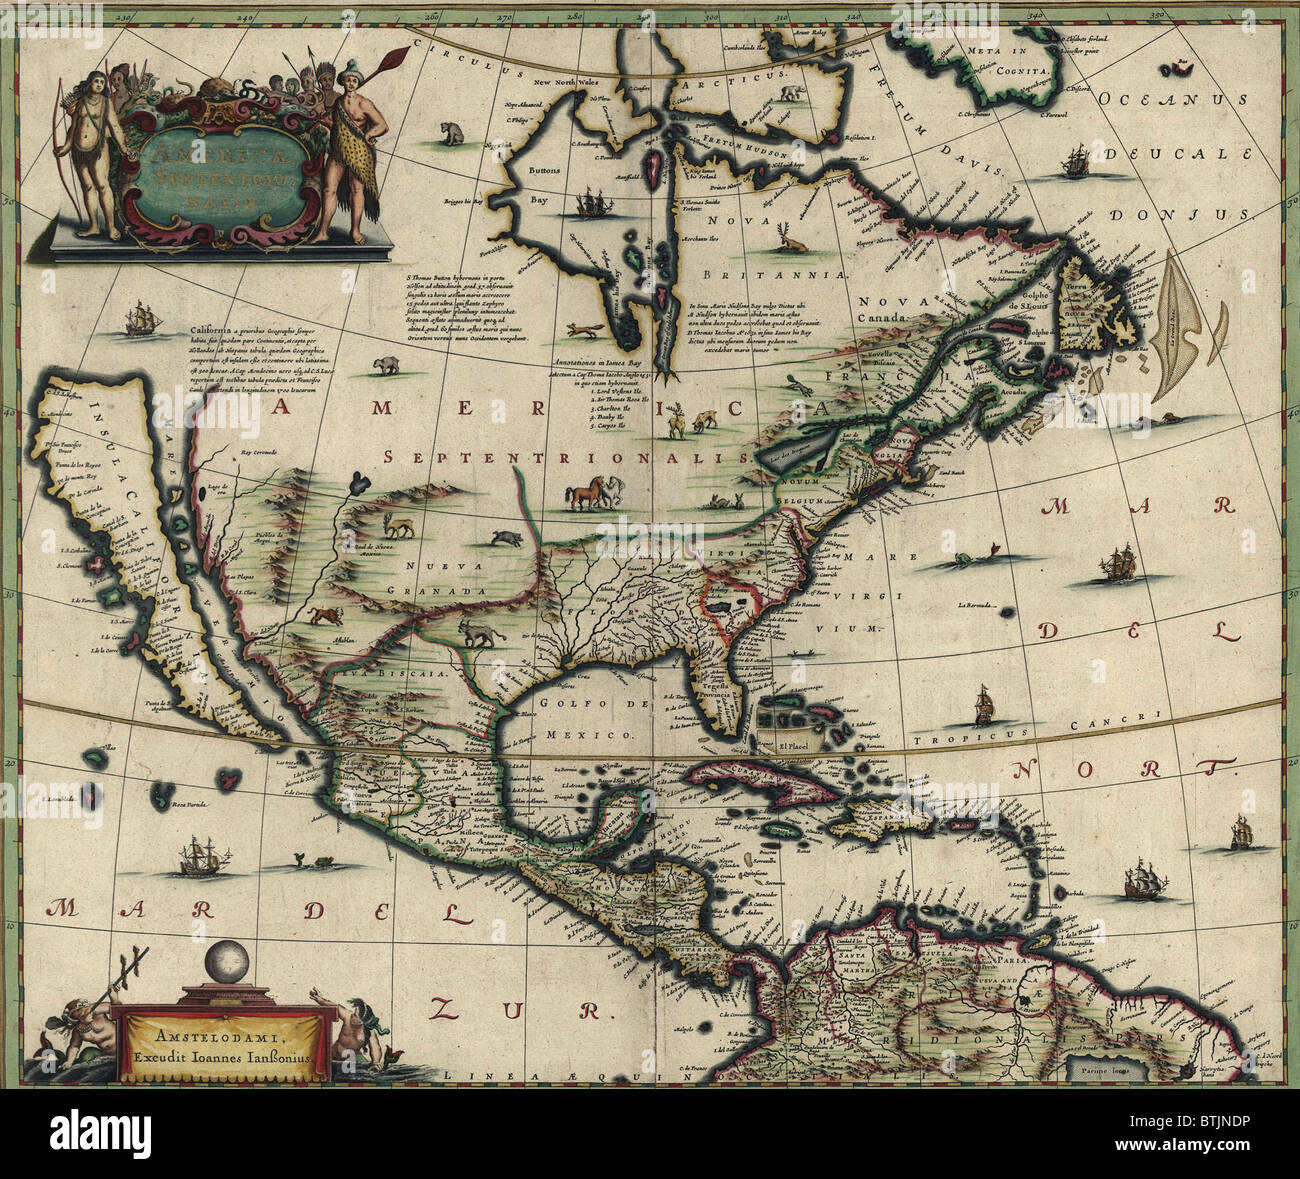 North American Map Created In 1652 Showing California As An